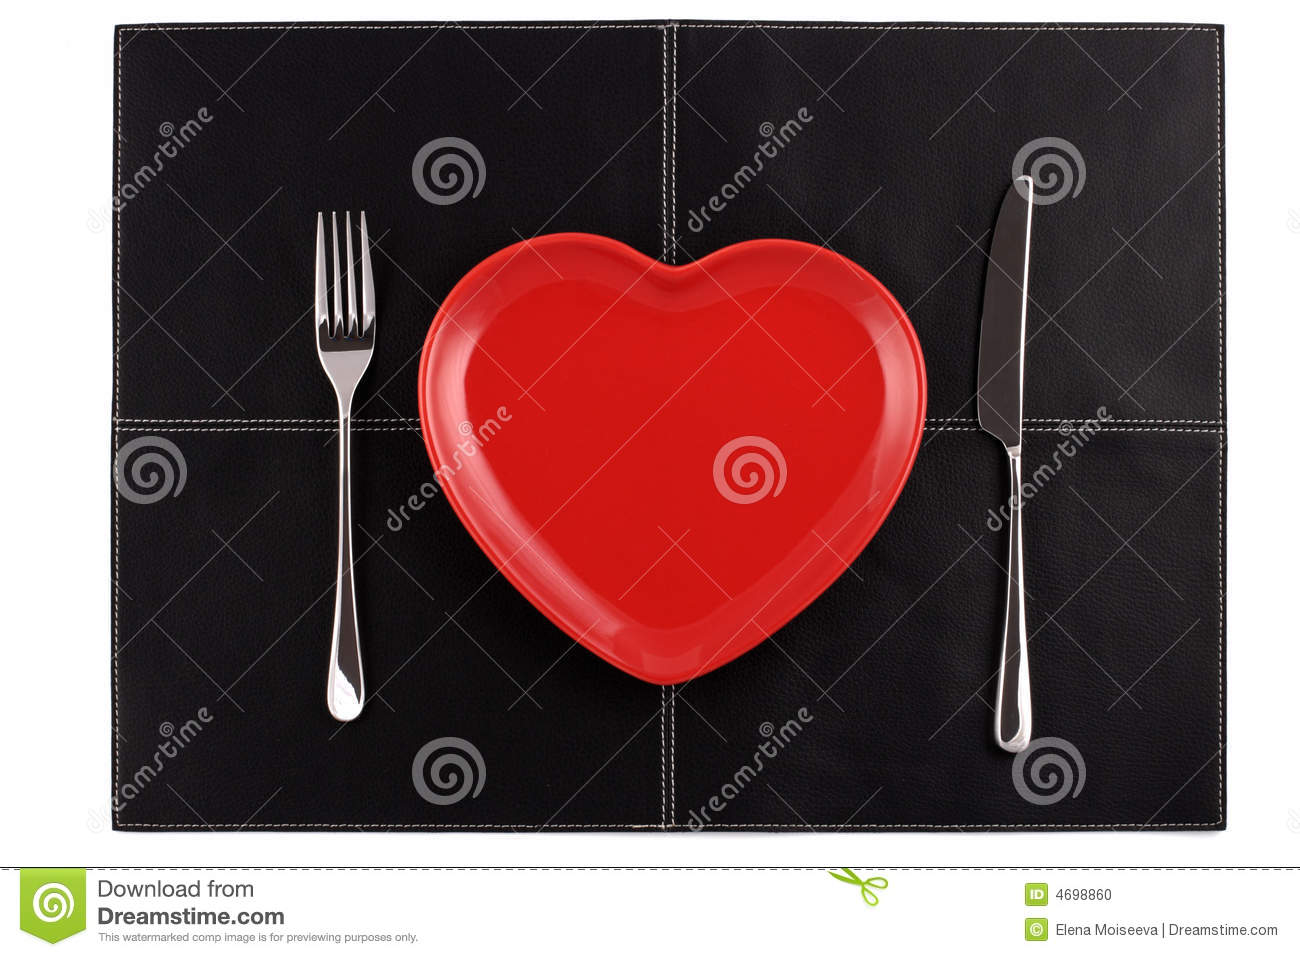 Empty red heart plate knife fork on black leather stock photo download comp ccuart Choice Image